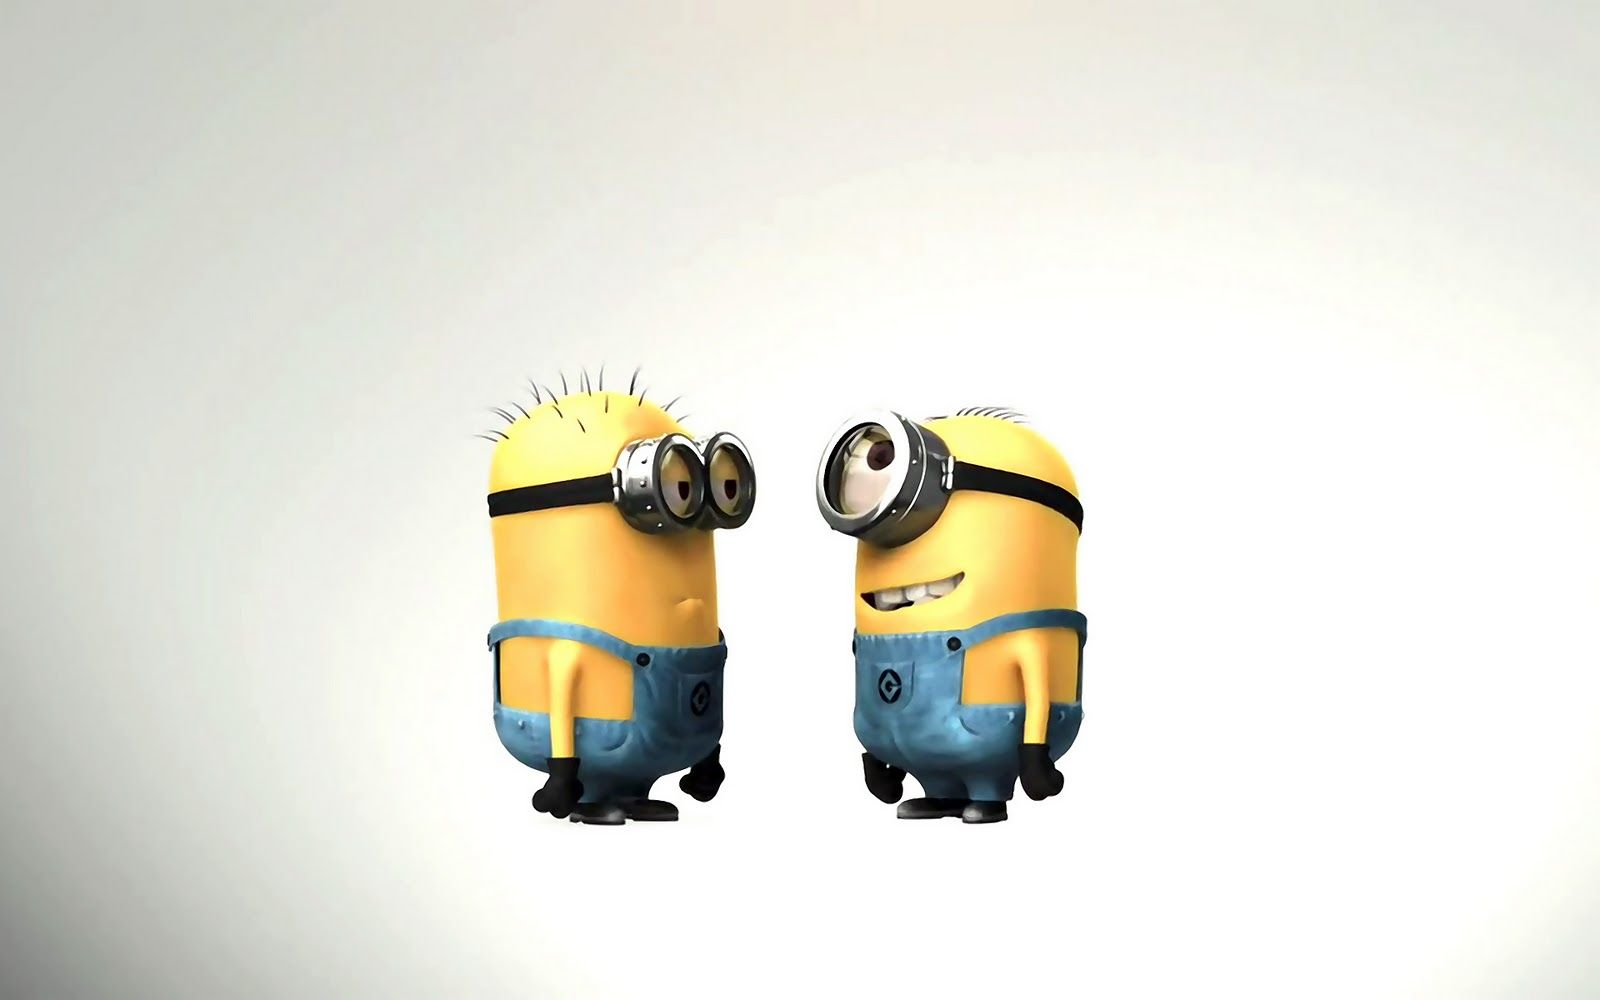 Superb Minions Wallpaper 1280×1024 Minion Wallpaper (49 Wallpapers) | Adorable  Wallpapers